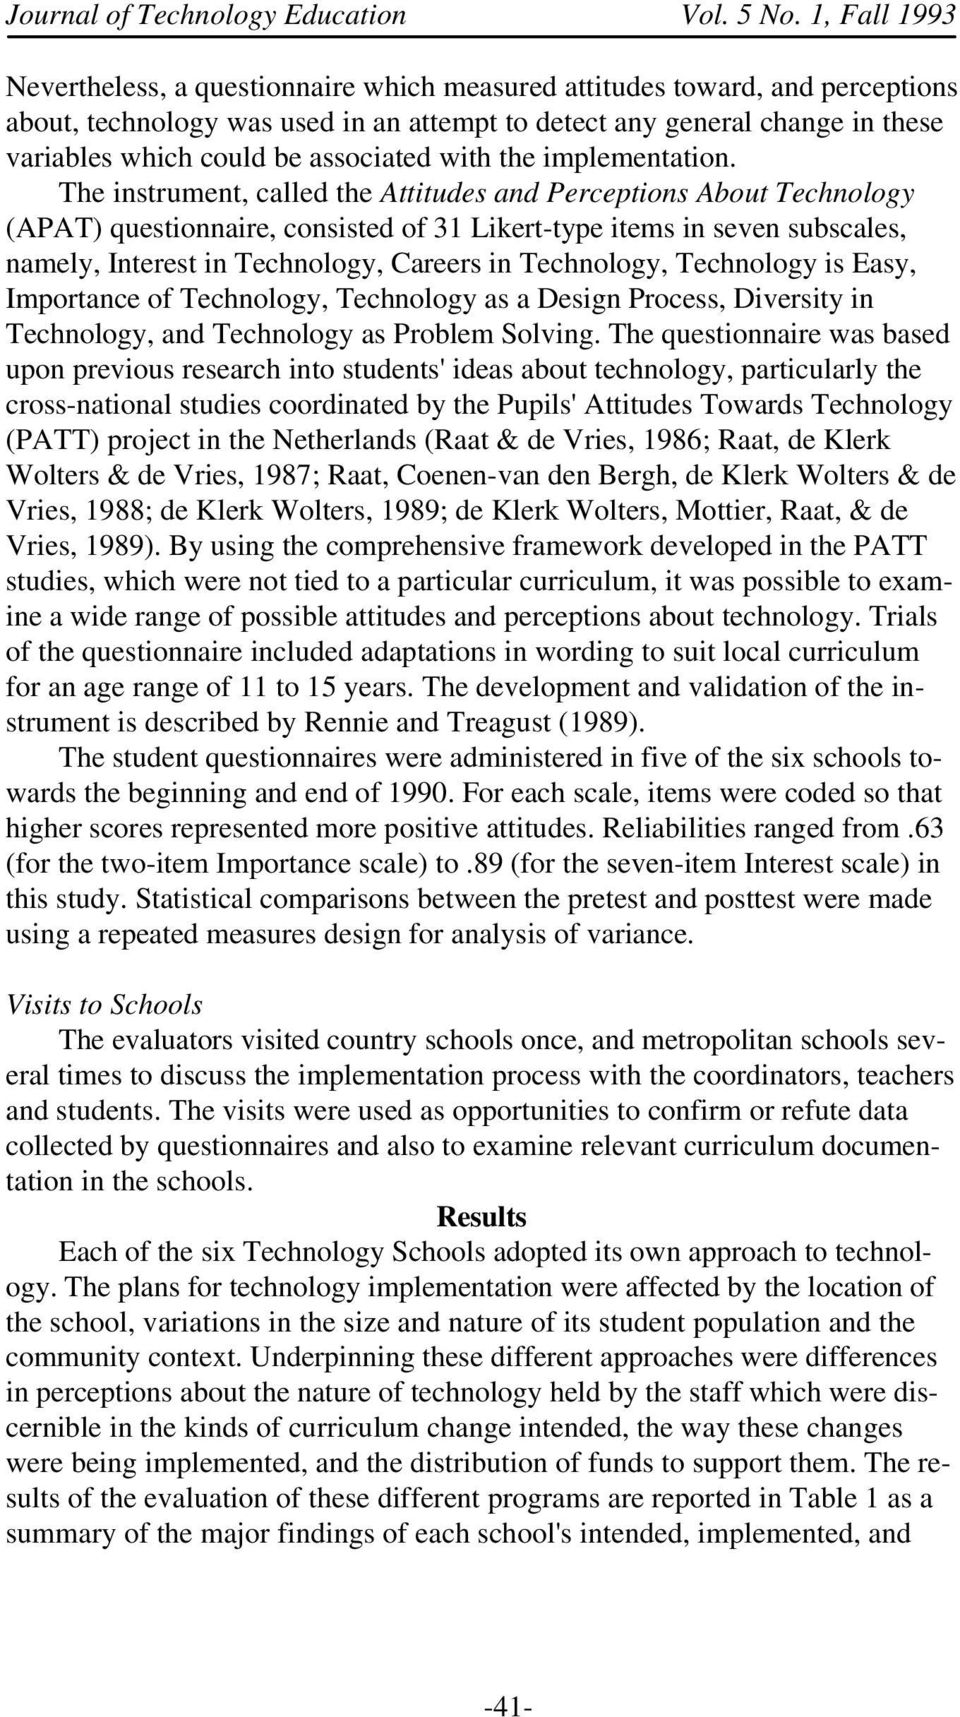 The instrument, called the Attitudes and Perceptions About Technology (APAT) questionnaire, consisted of 31 Likert-type items in seven subscales, namely, Interest in Technology, Careers in